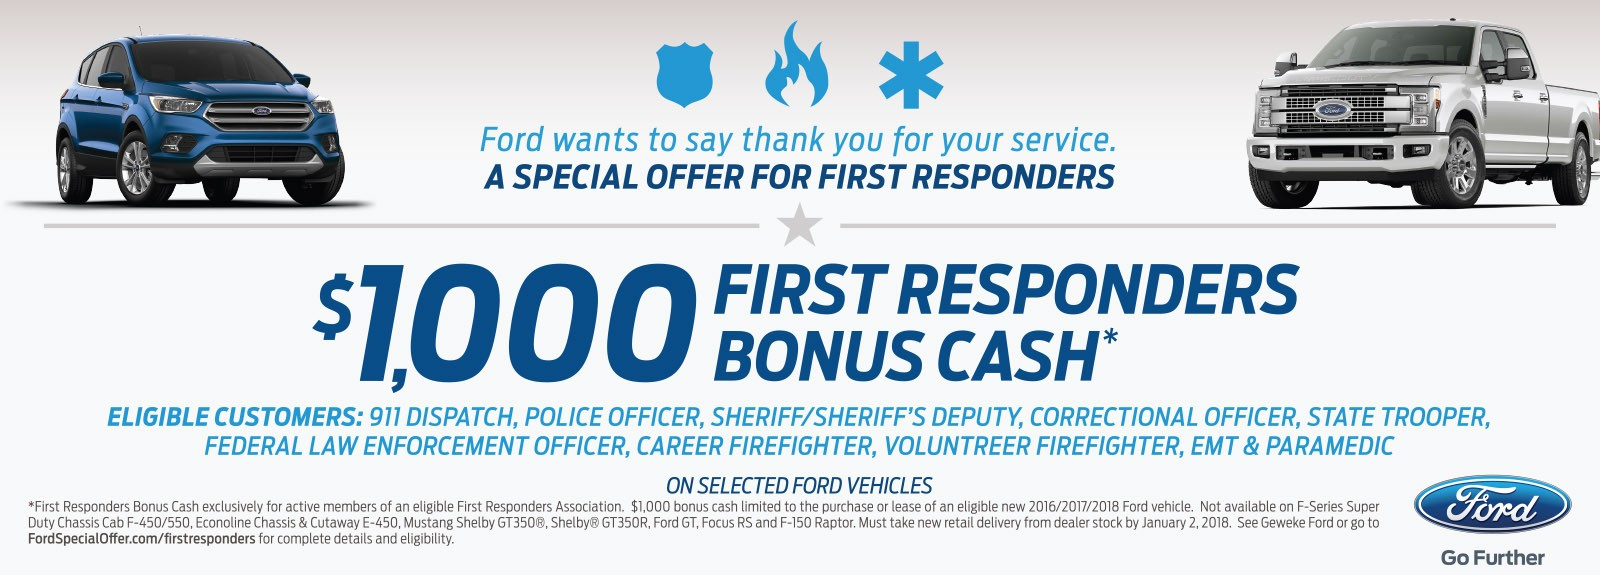 $1,000 First Responders Bonus Cash on select Ford Vehicles!